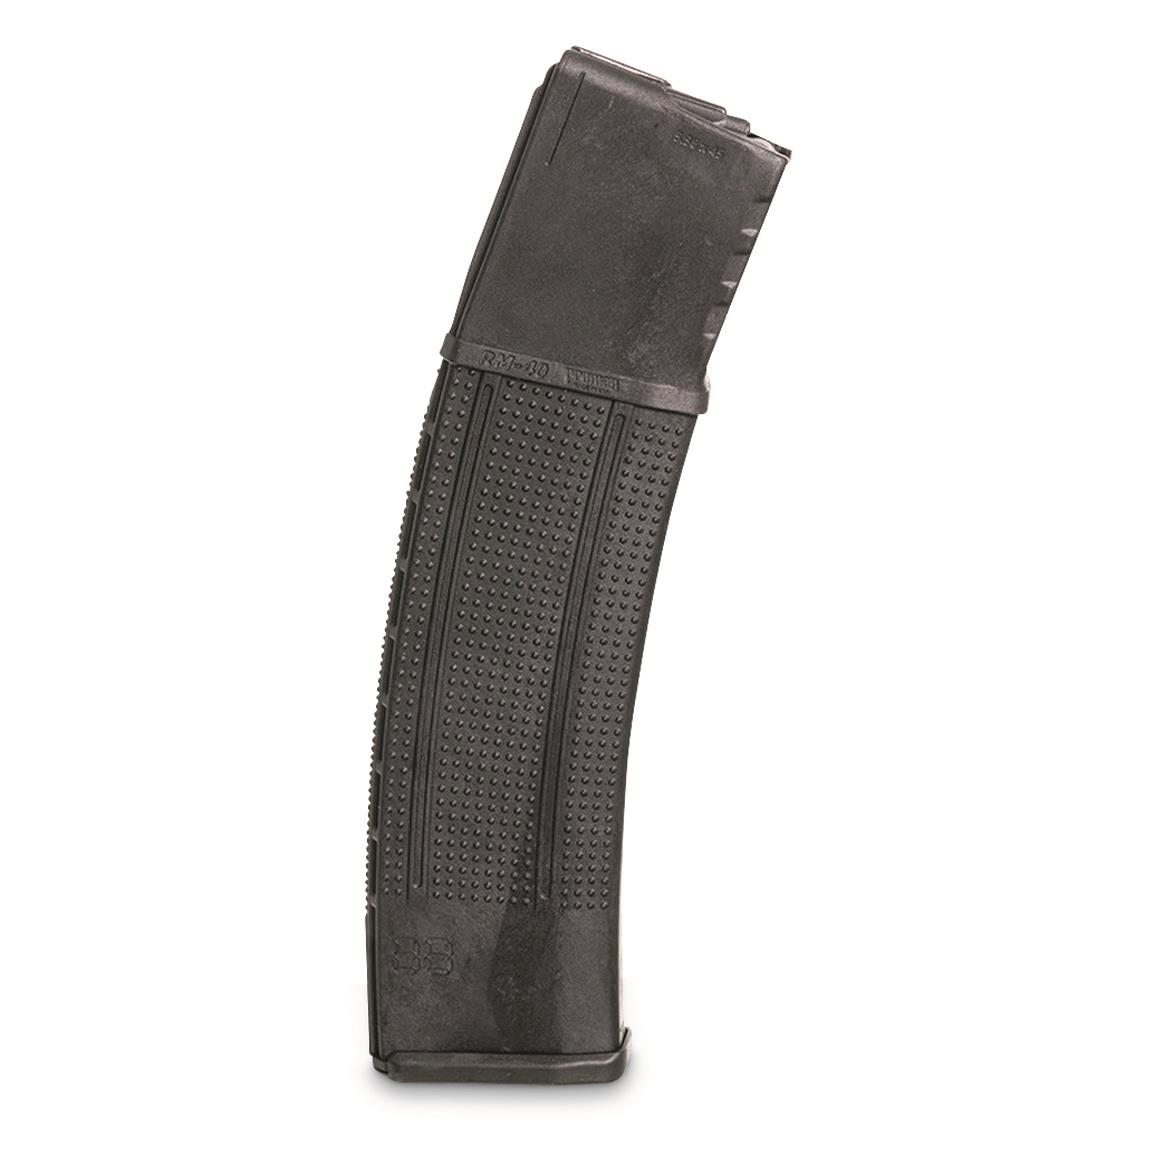 ProMag RollerMag AR-15 Extended Magazine, 5.56 NATO/.223 Rem., 40 Rounds,